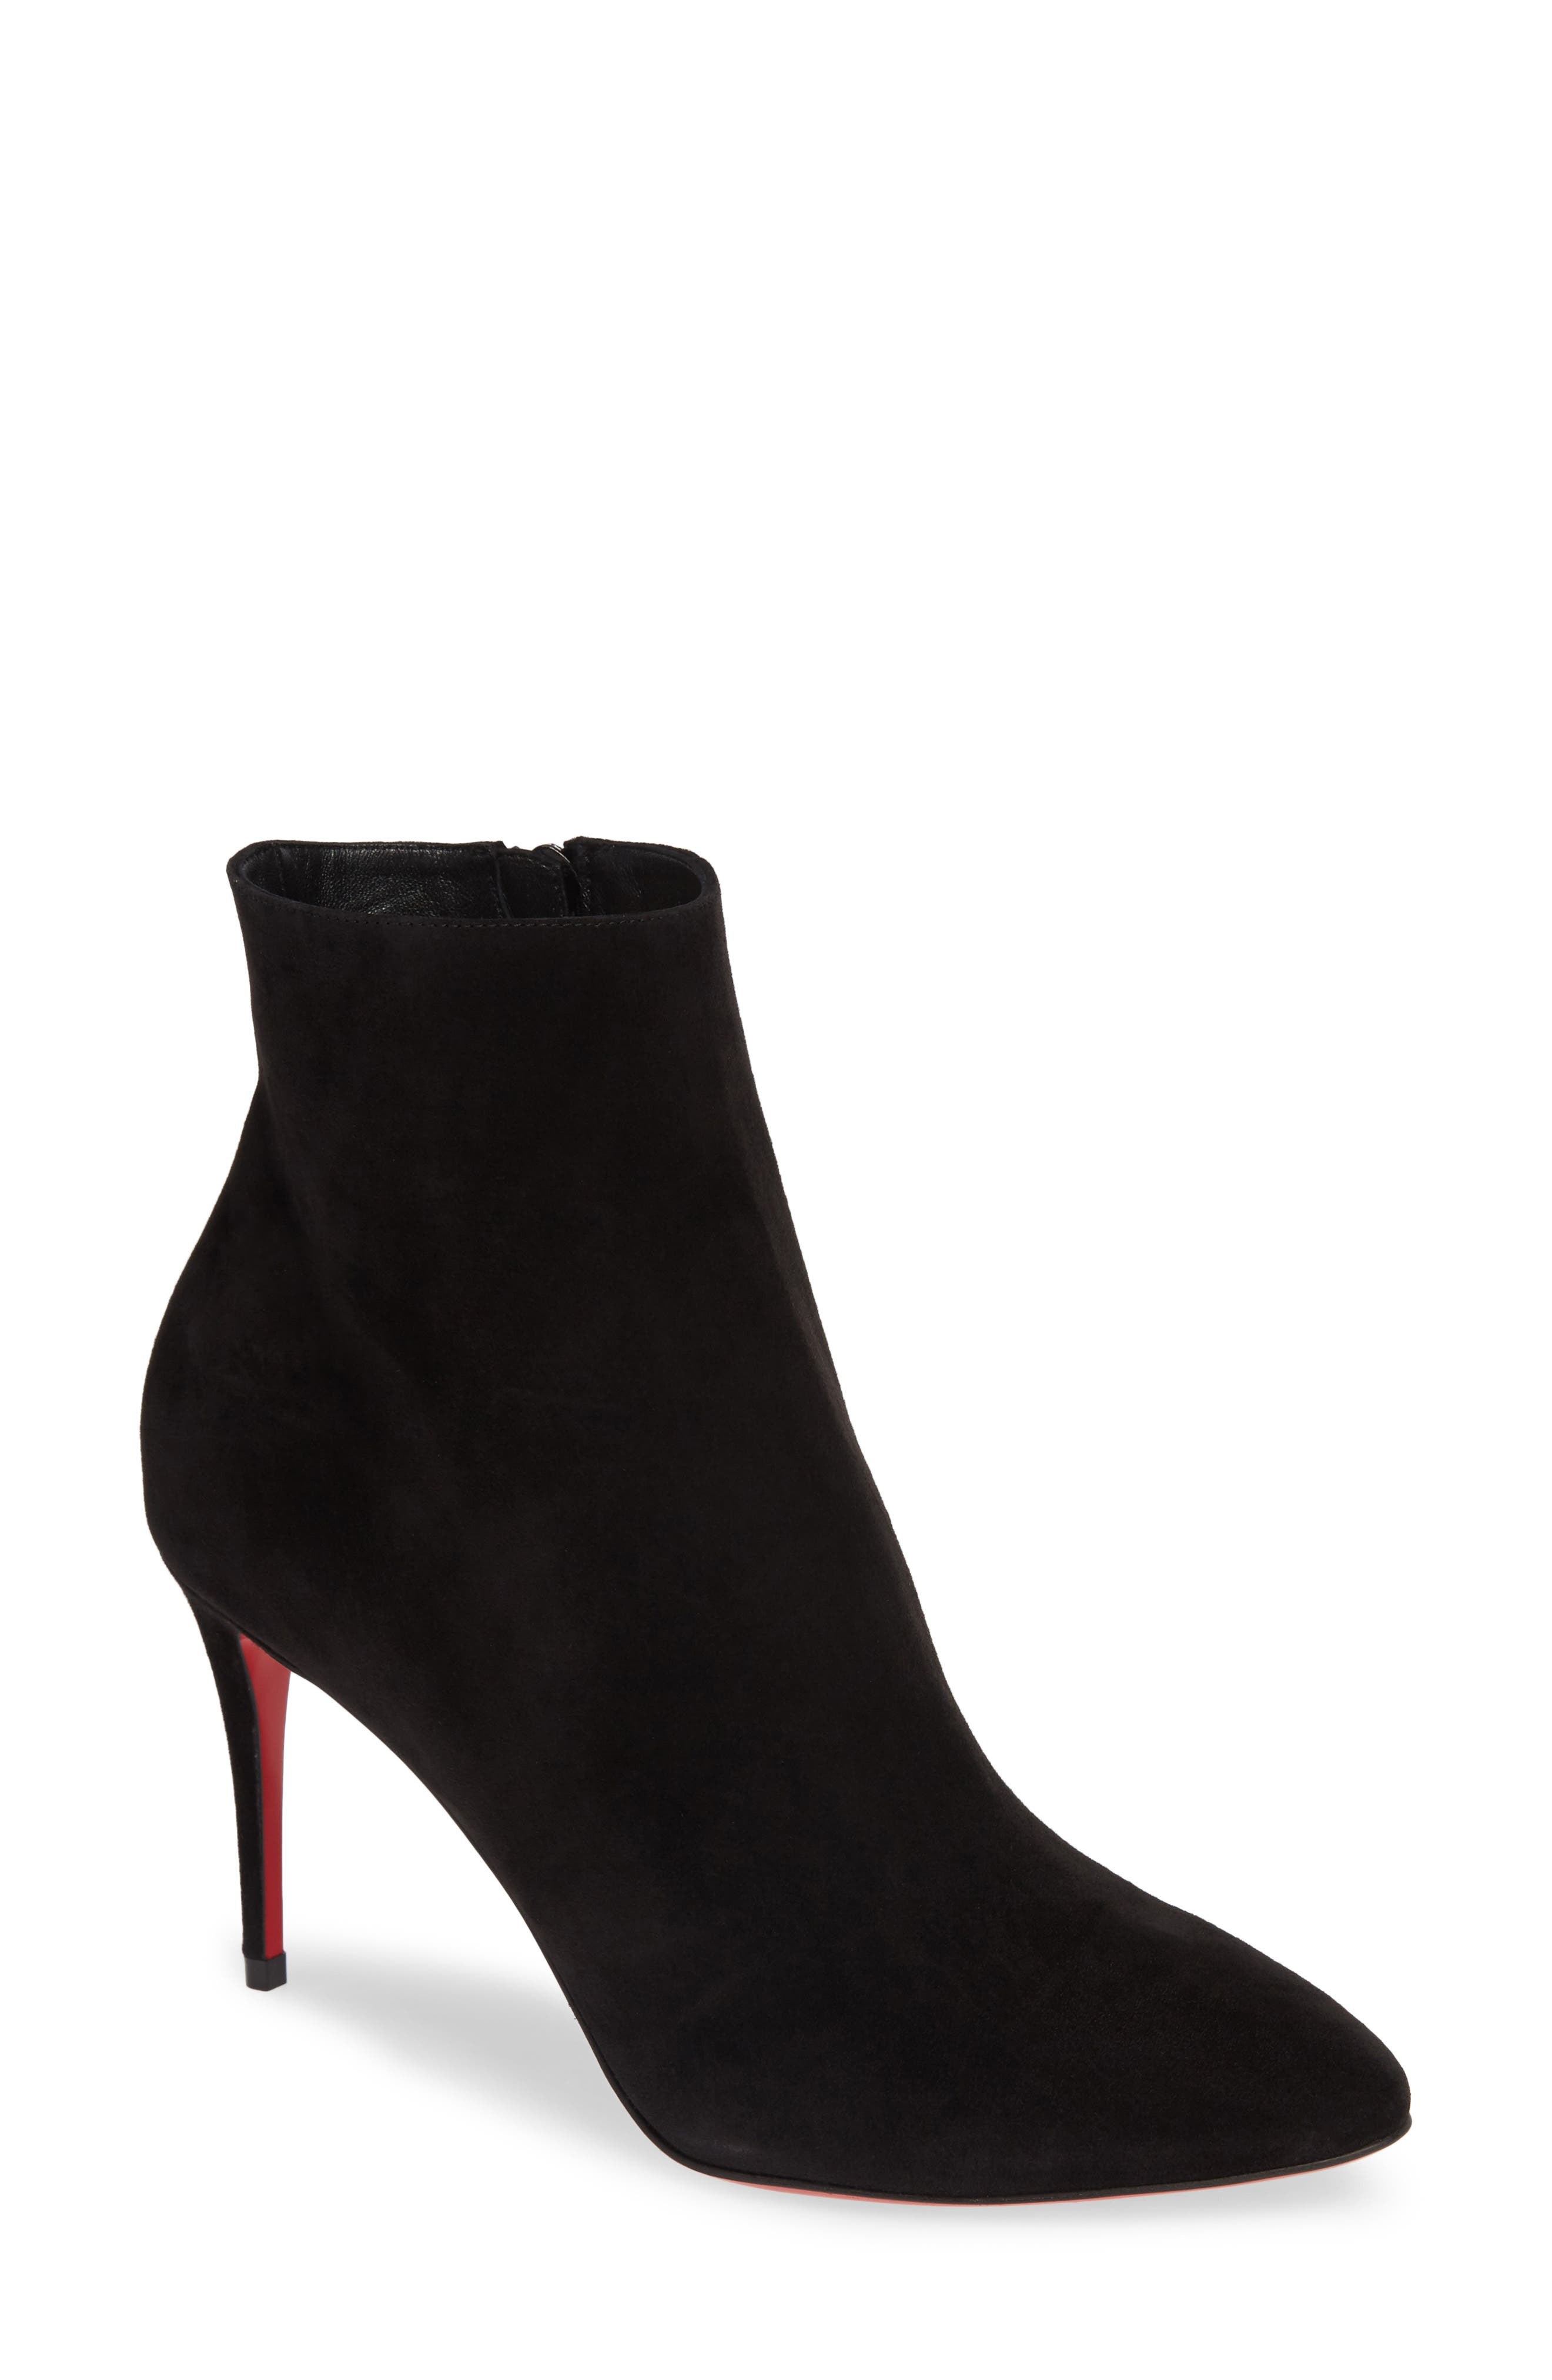 Eloise Pointy Toe Bootie,                             Main thumbnail 1, color,                             BLACK SUEDE